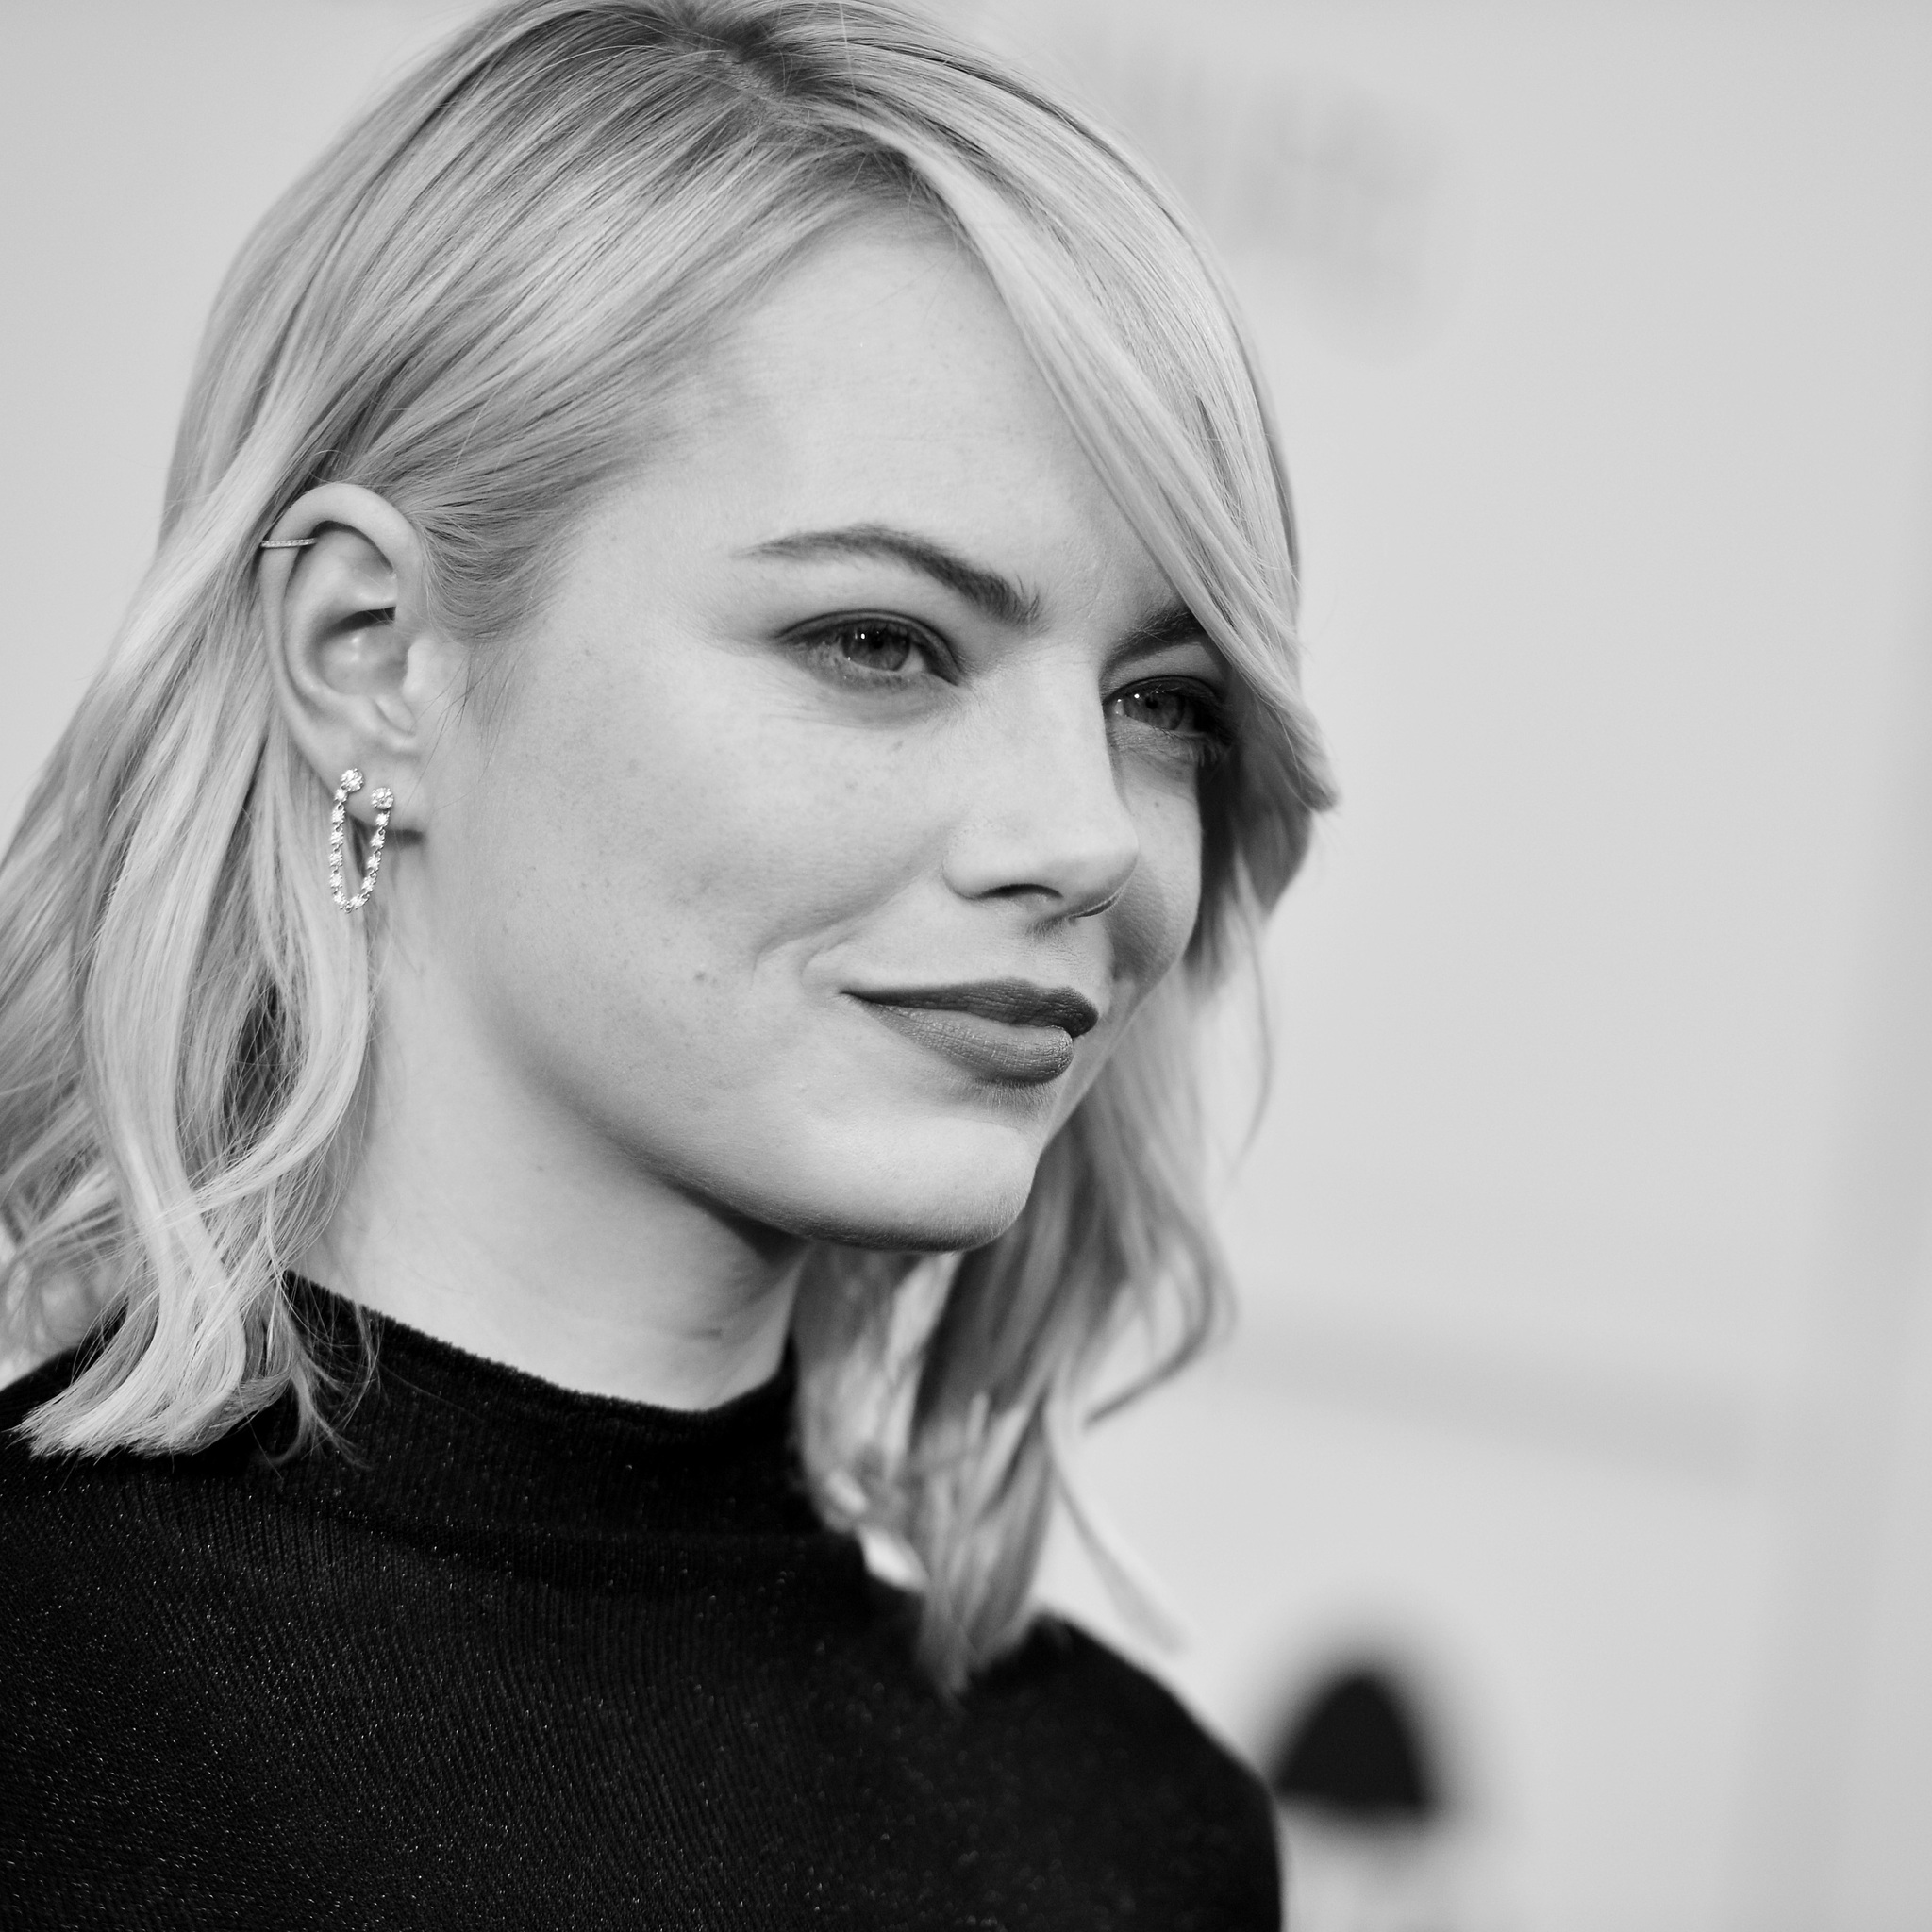 2048x2048 Emma Stone 2017 HD Ipad Air HD 4k Wallpapers